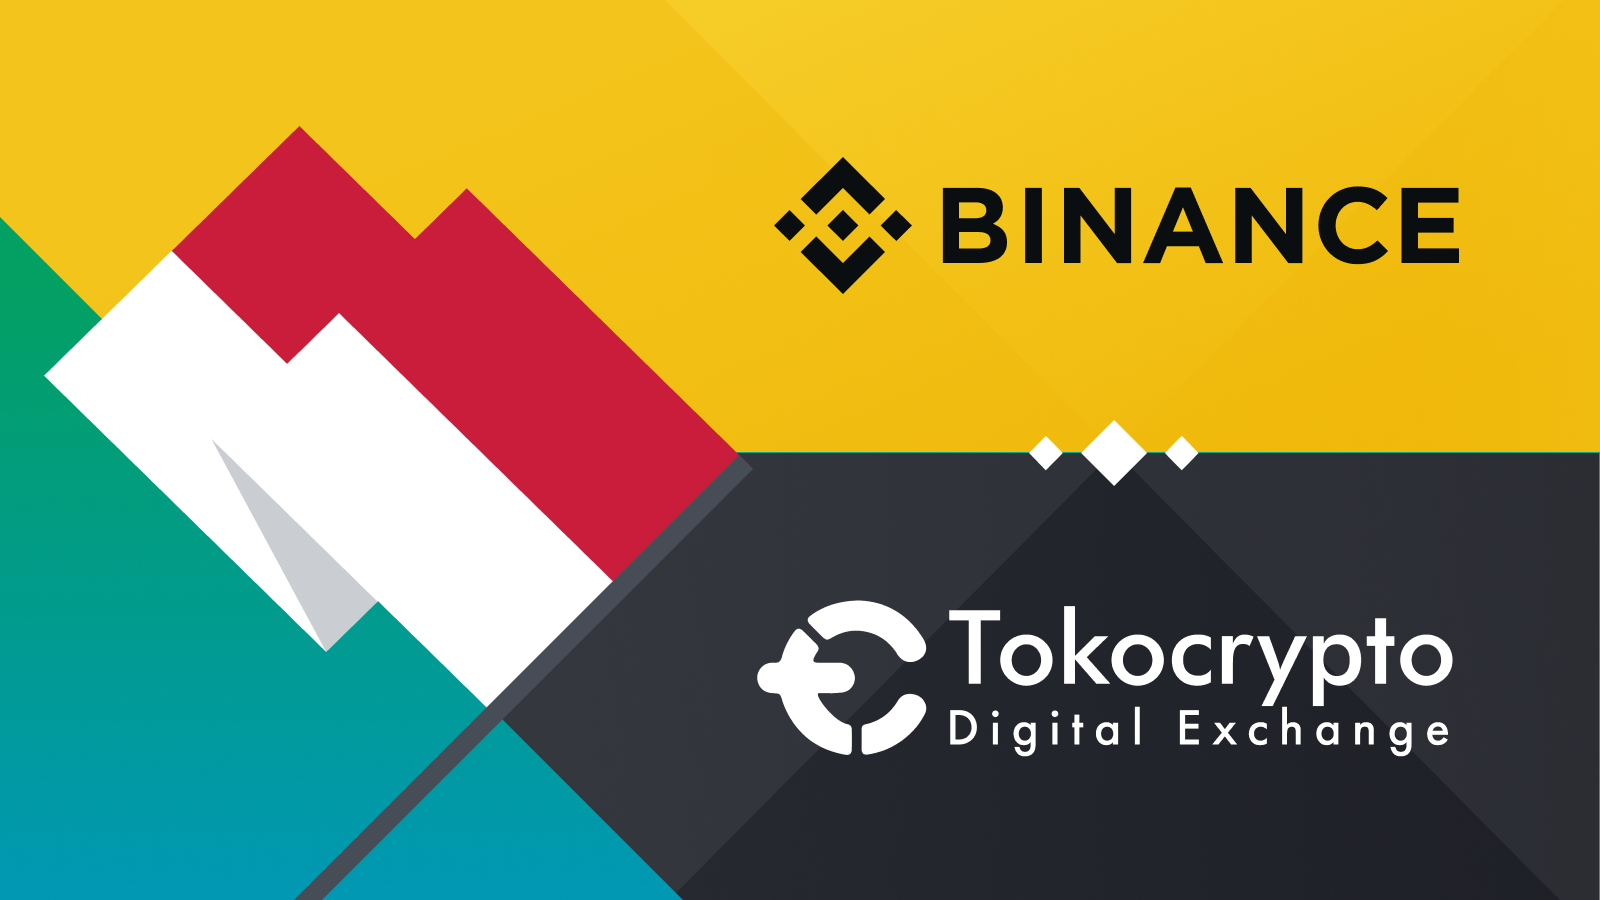 Binance Exchange Invests in the Indonesian Tokocrypto exchange